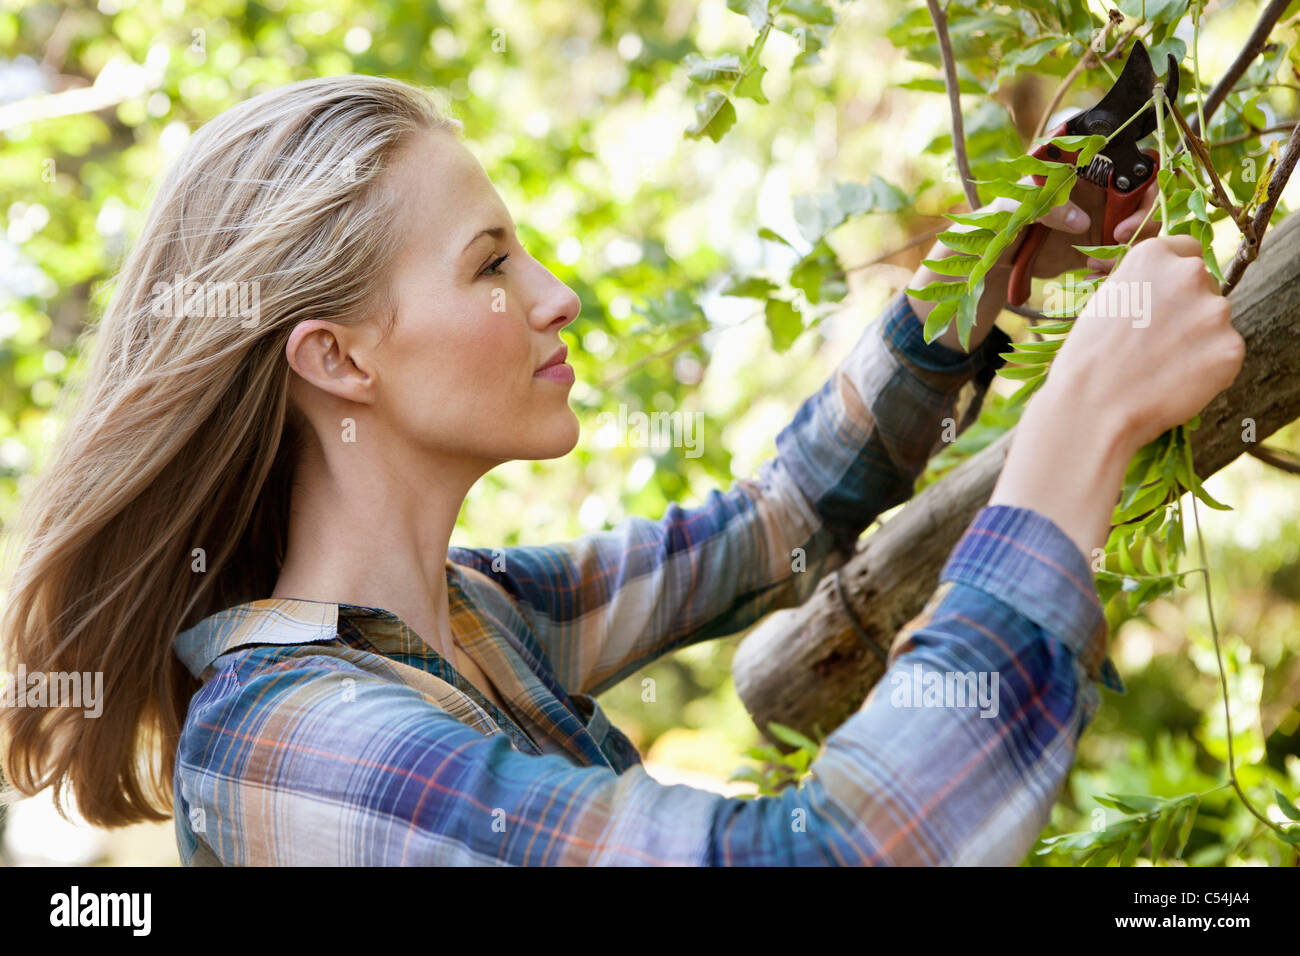 Young woman pruning plants Stock Photo